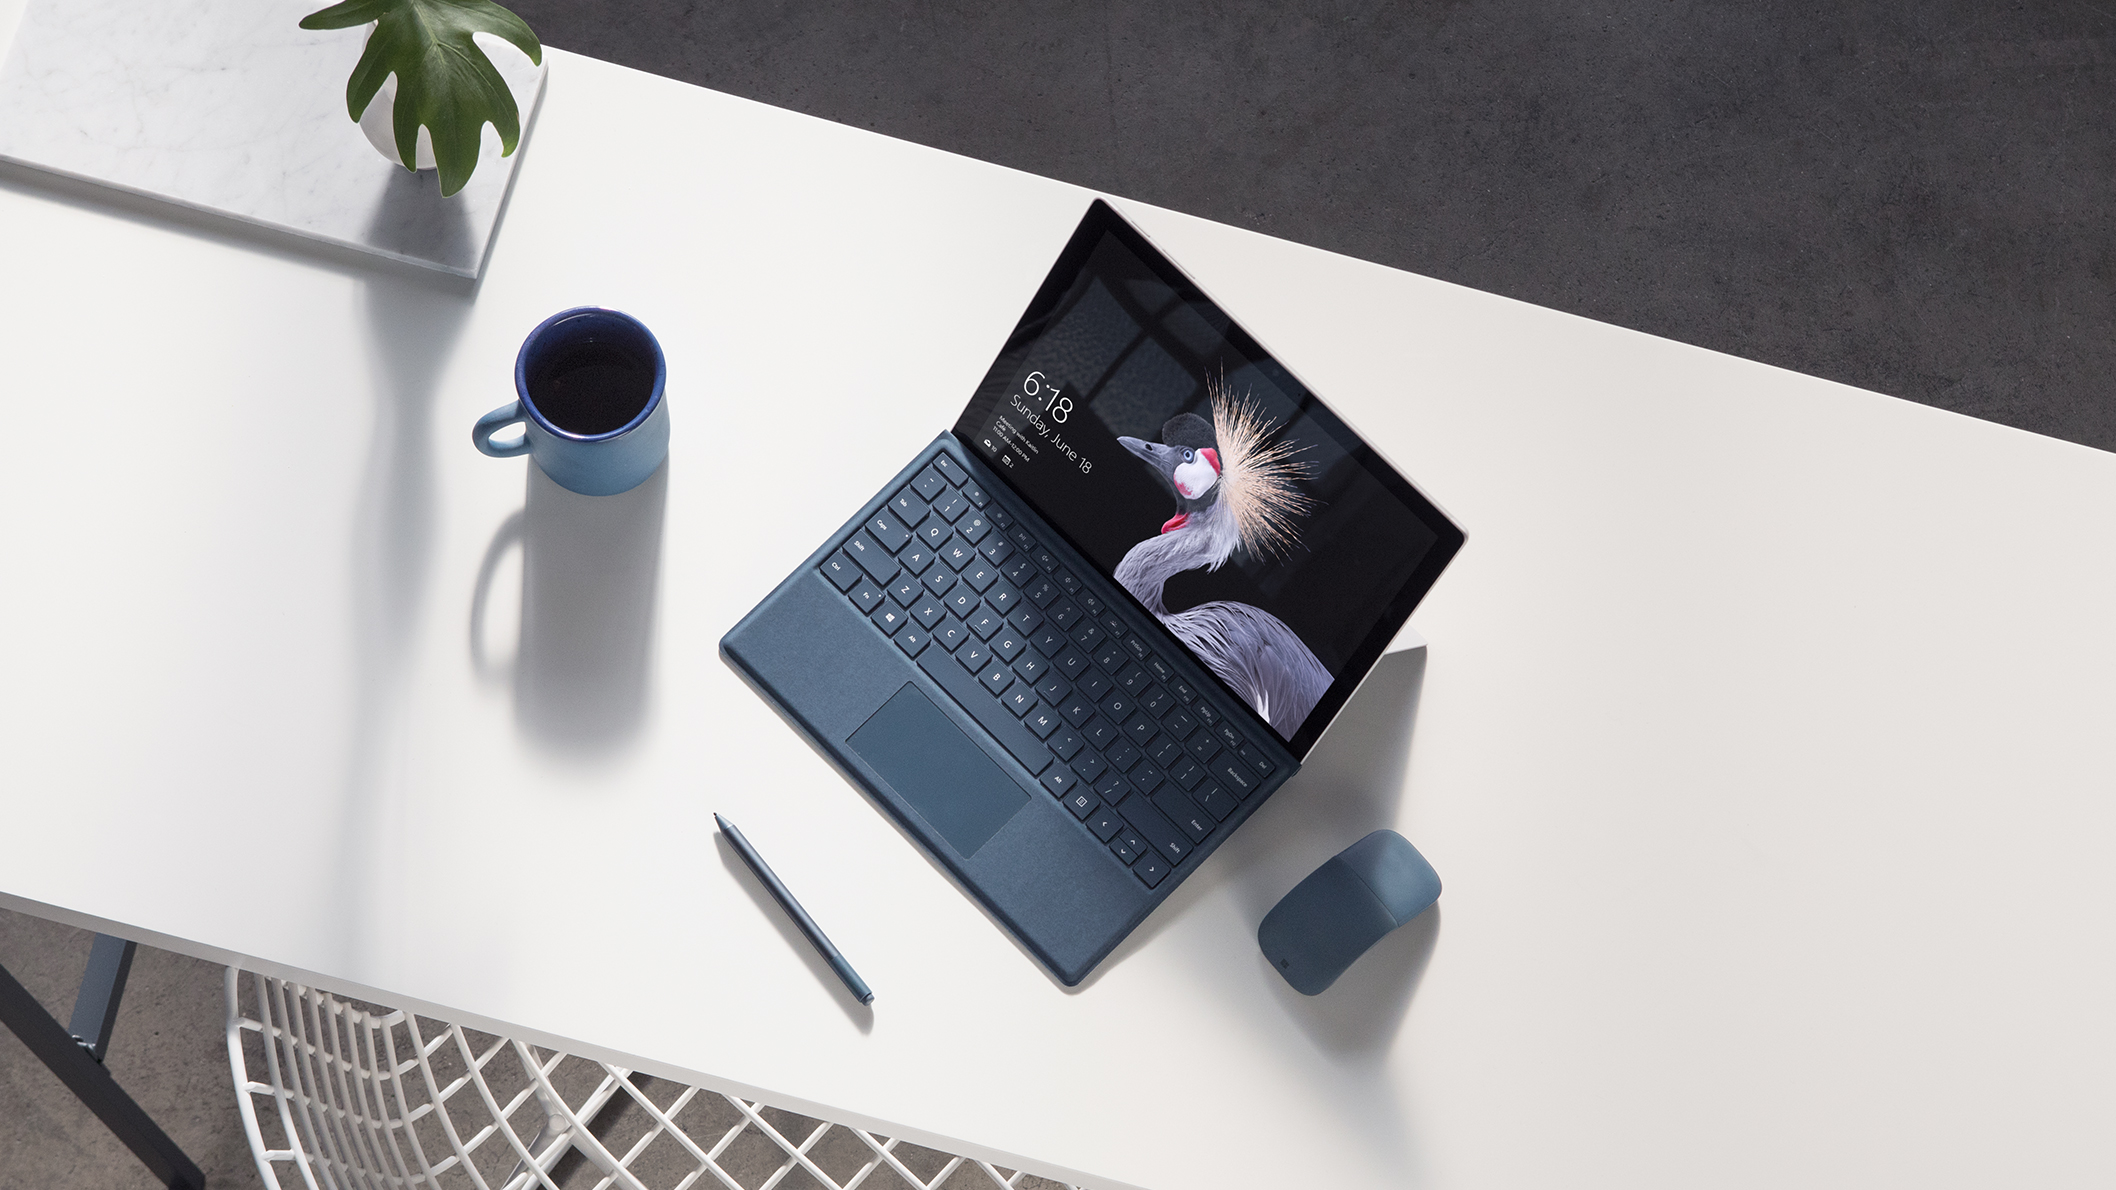 new Surface Pro device